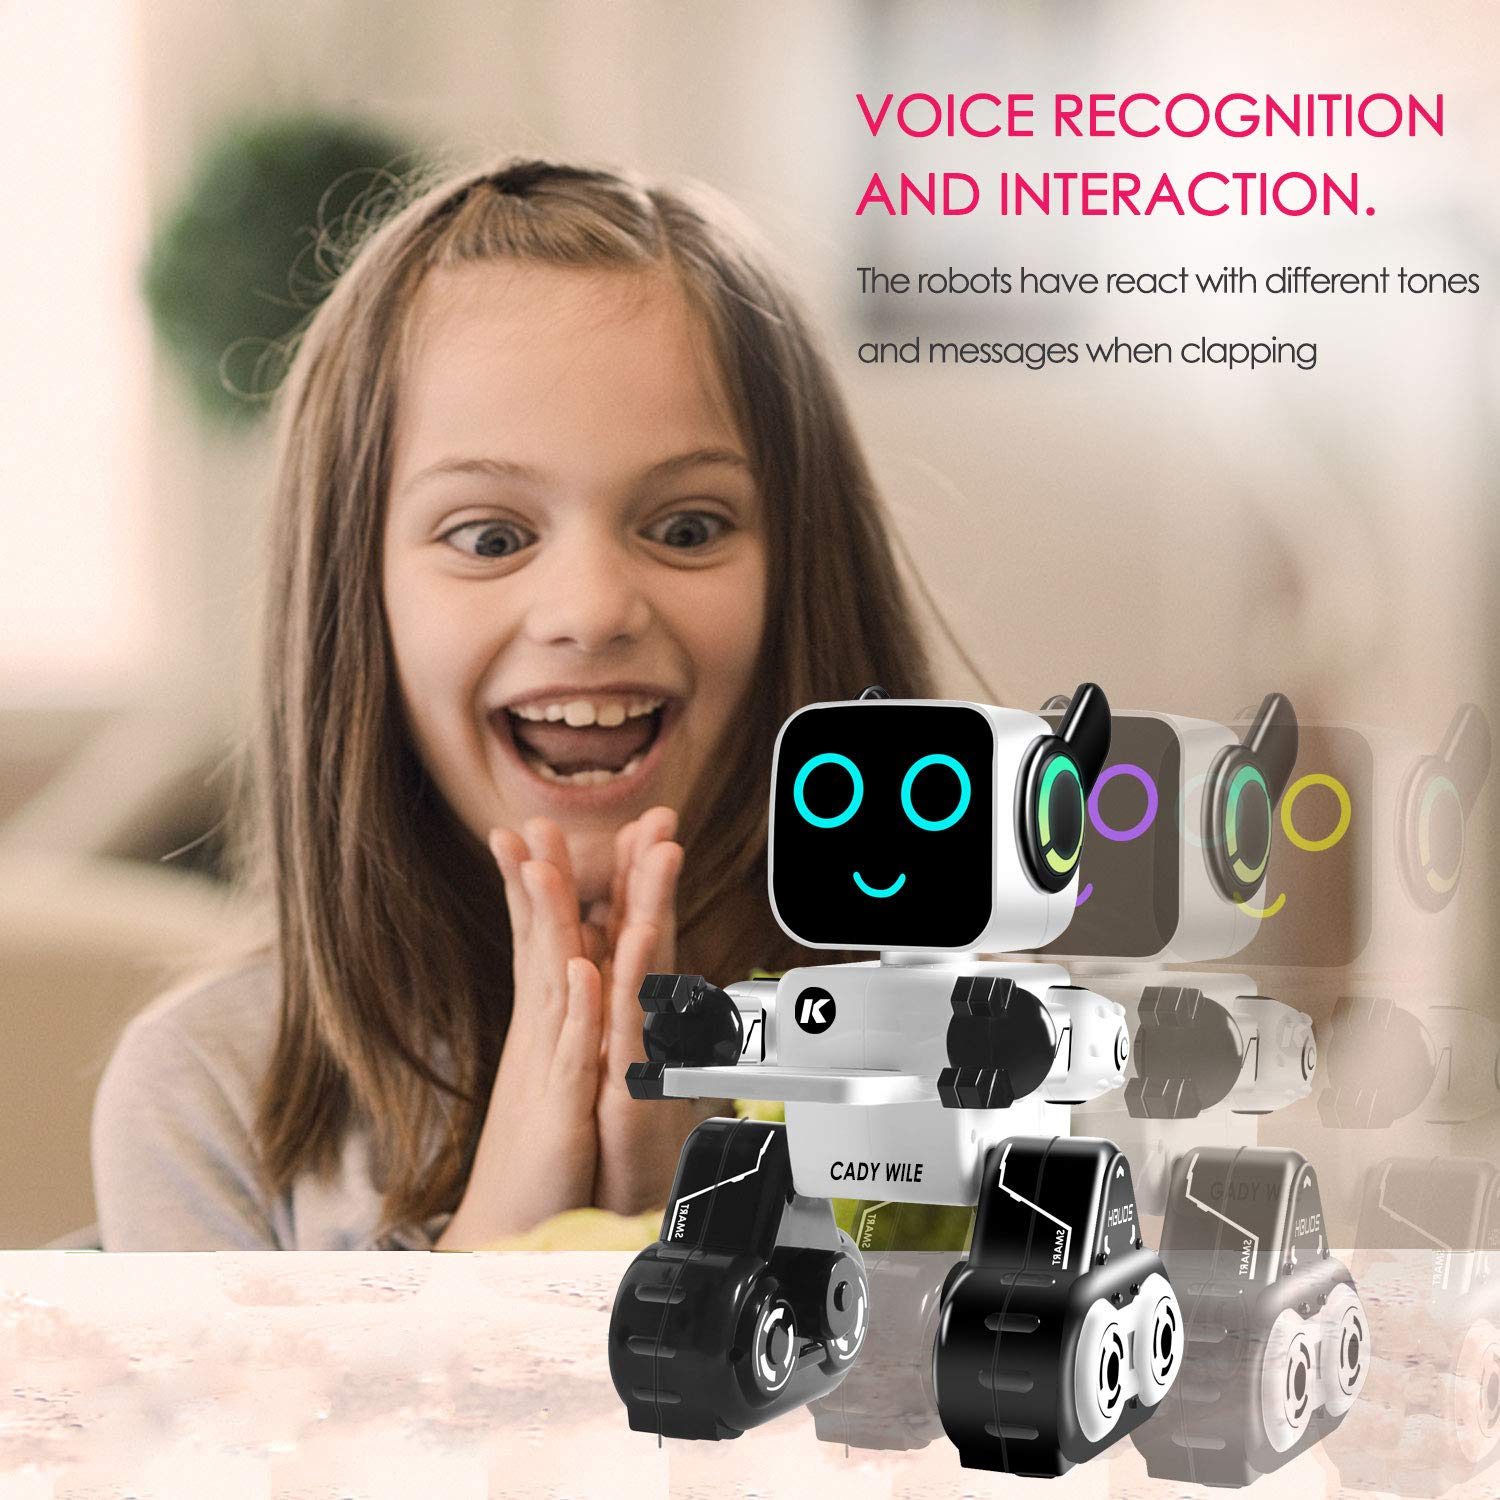 Remote Control Toy Robot for kids,Touch & Sound Control, Speaks, Dance Moves, Plays Music, Light-up Eyes & Mouth. Built-in Coin Bank. Programmable, Rechargeable RC Robot Kit for Boys, Girls All Ages. by IHBUDS (Image #4)